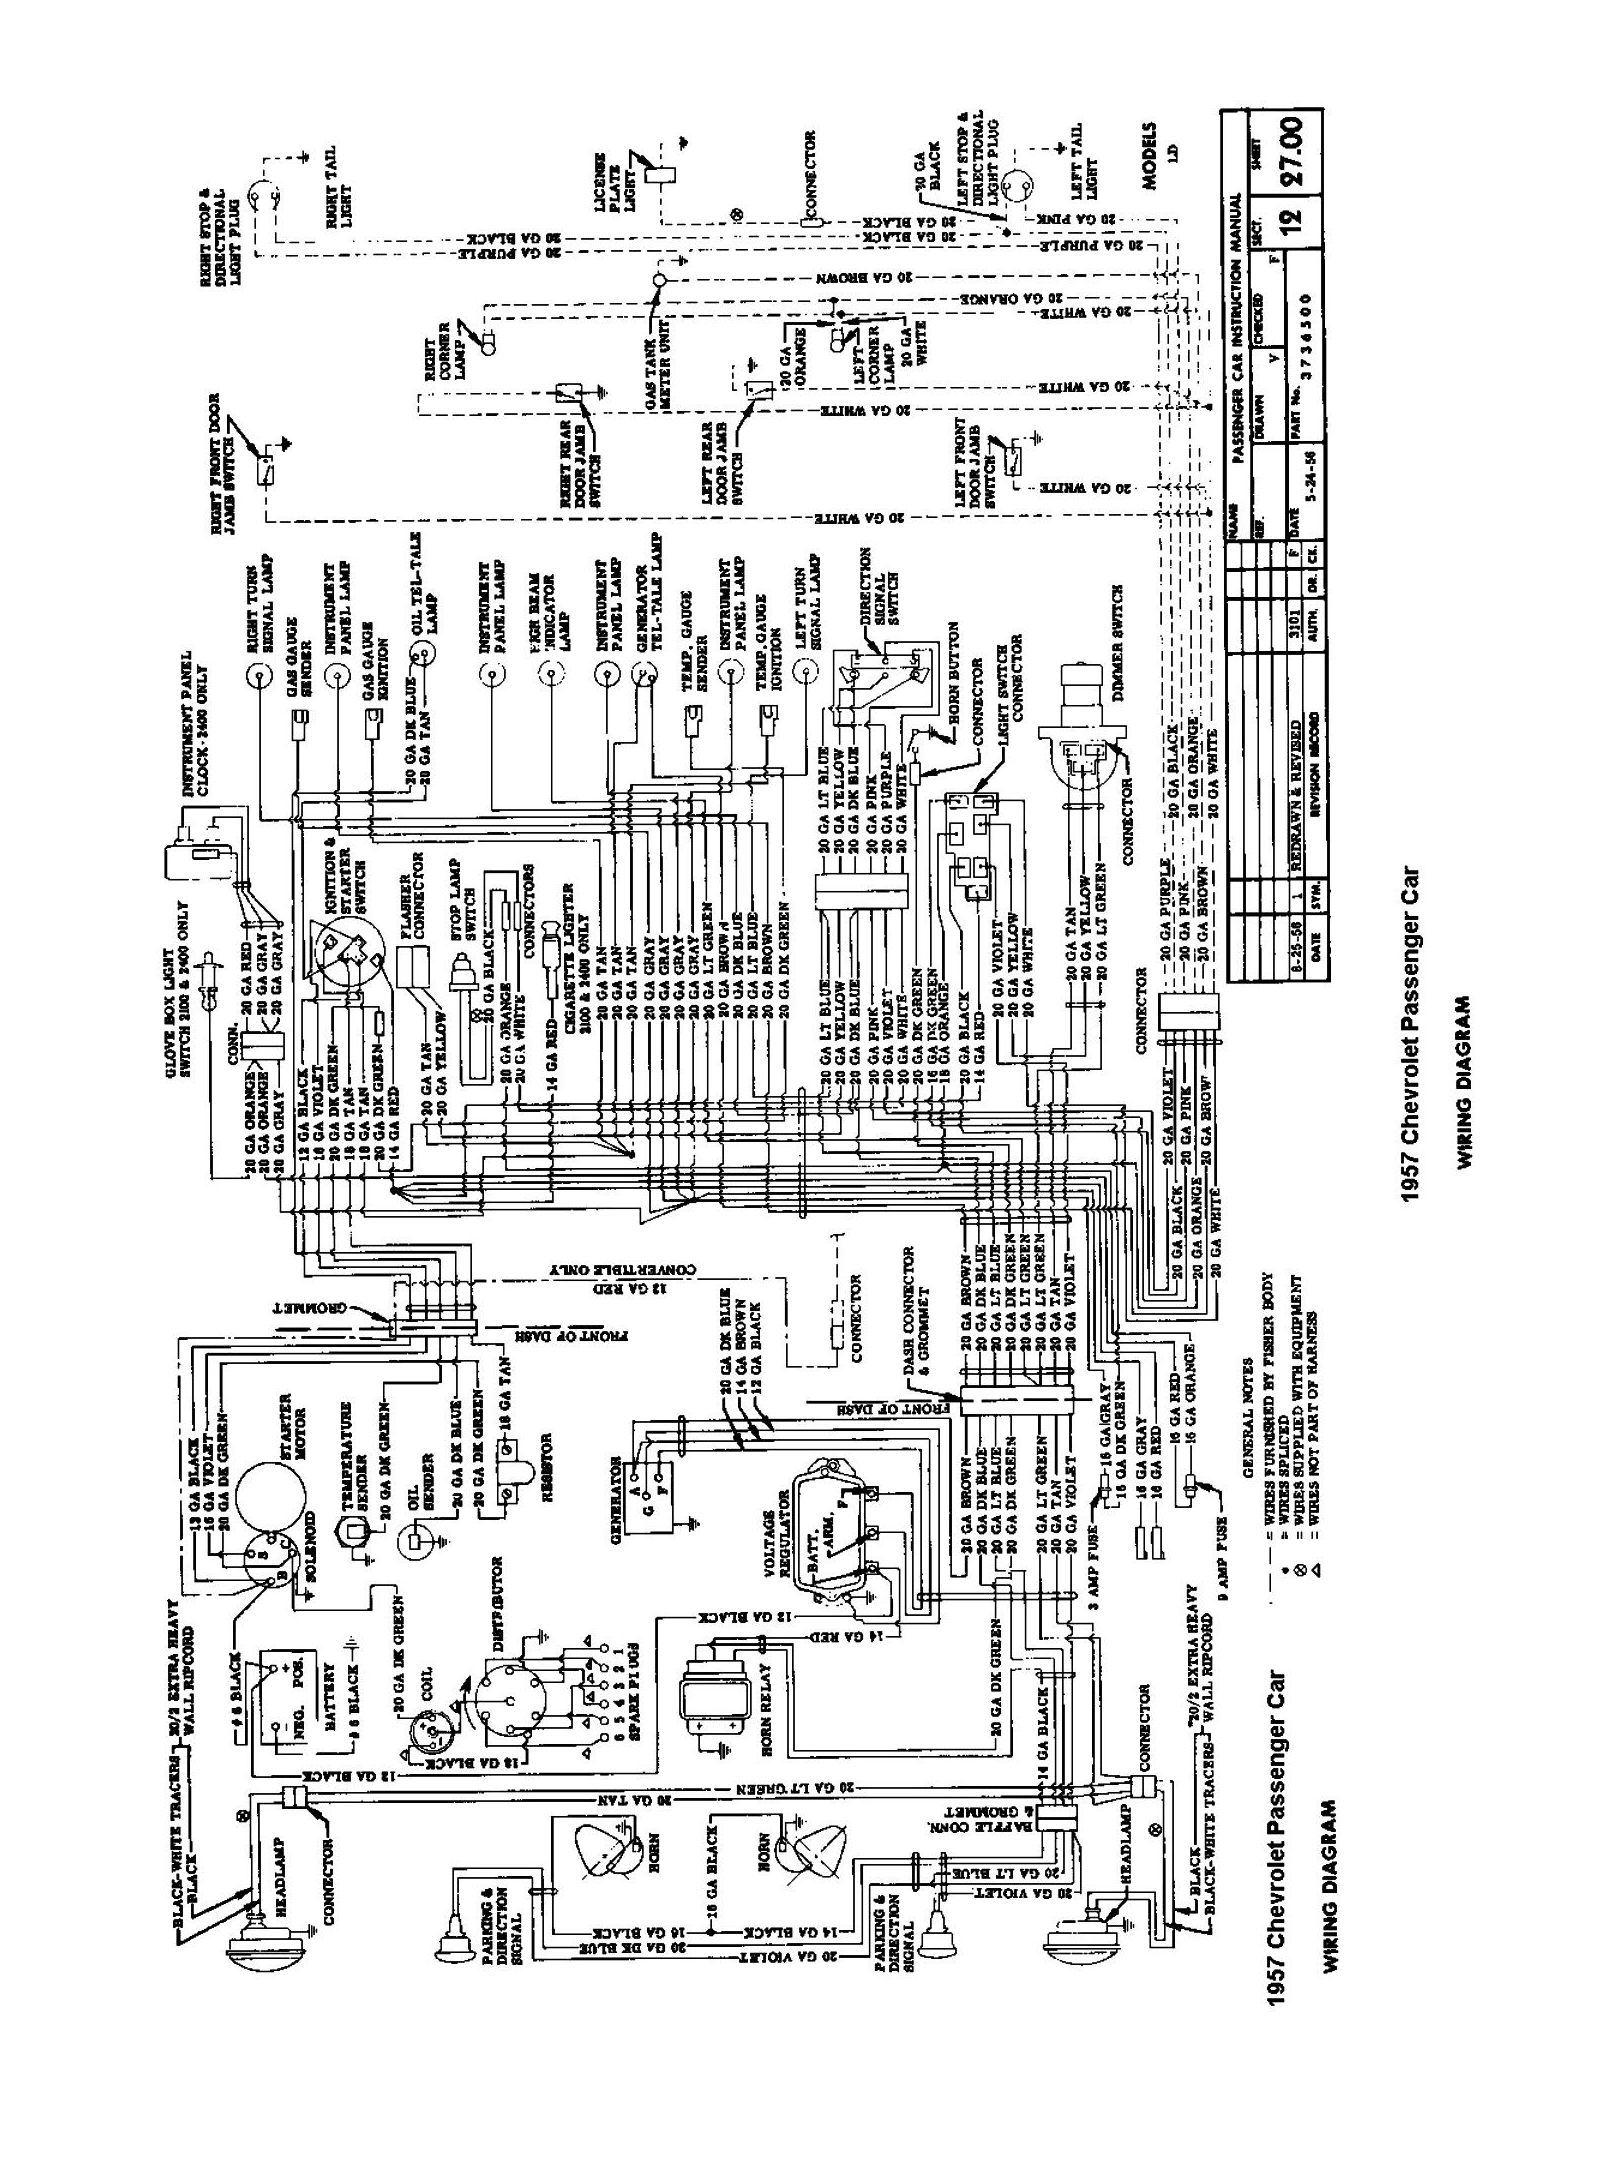 57 chevy wiring diagram 57 chevys diagram, 1957